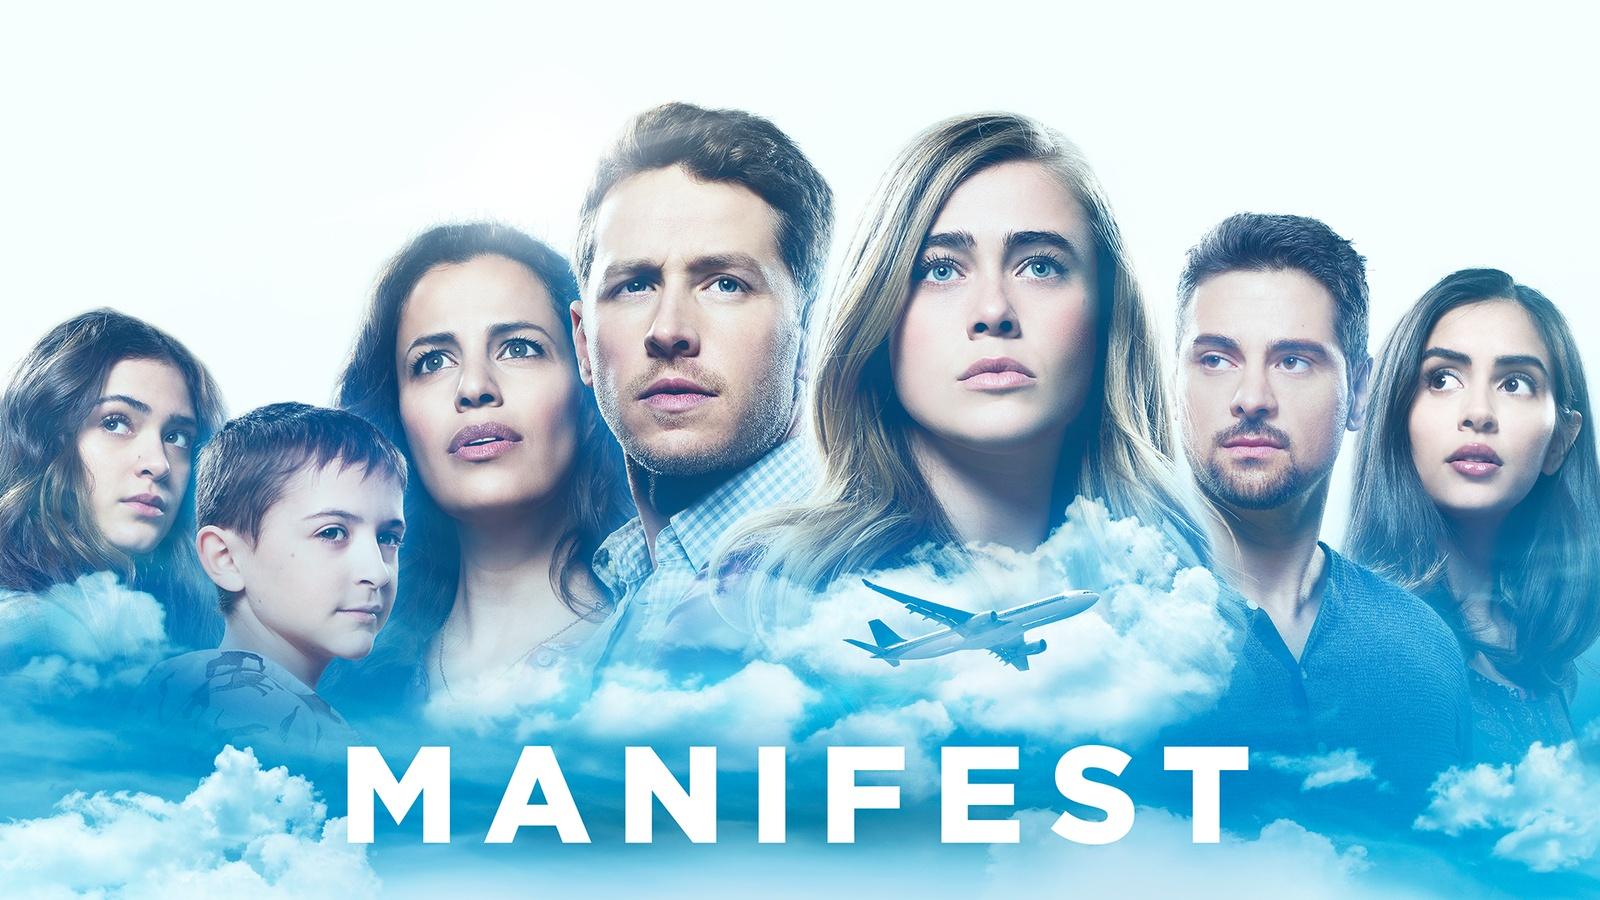 Манифест/Manifest background